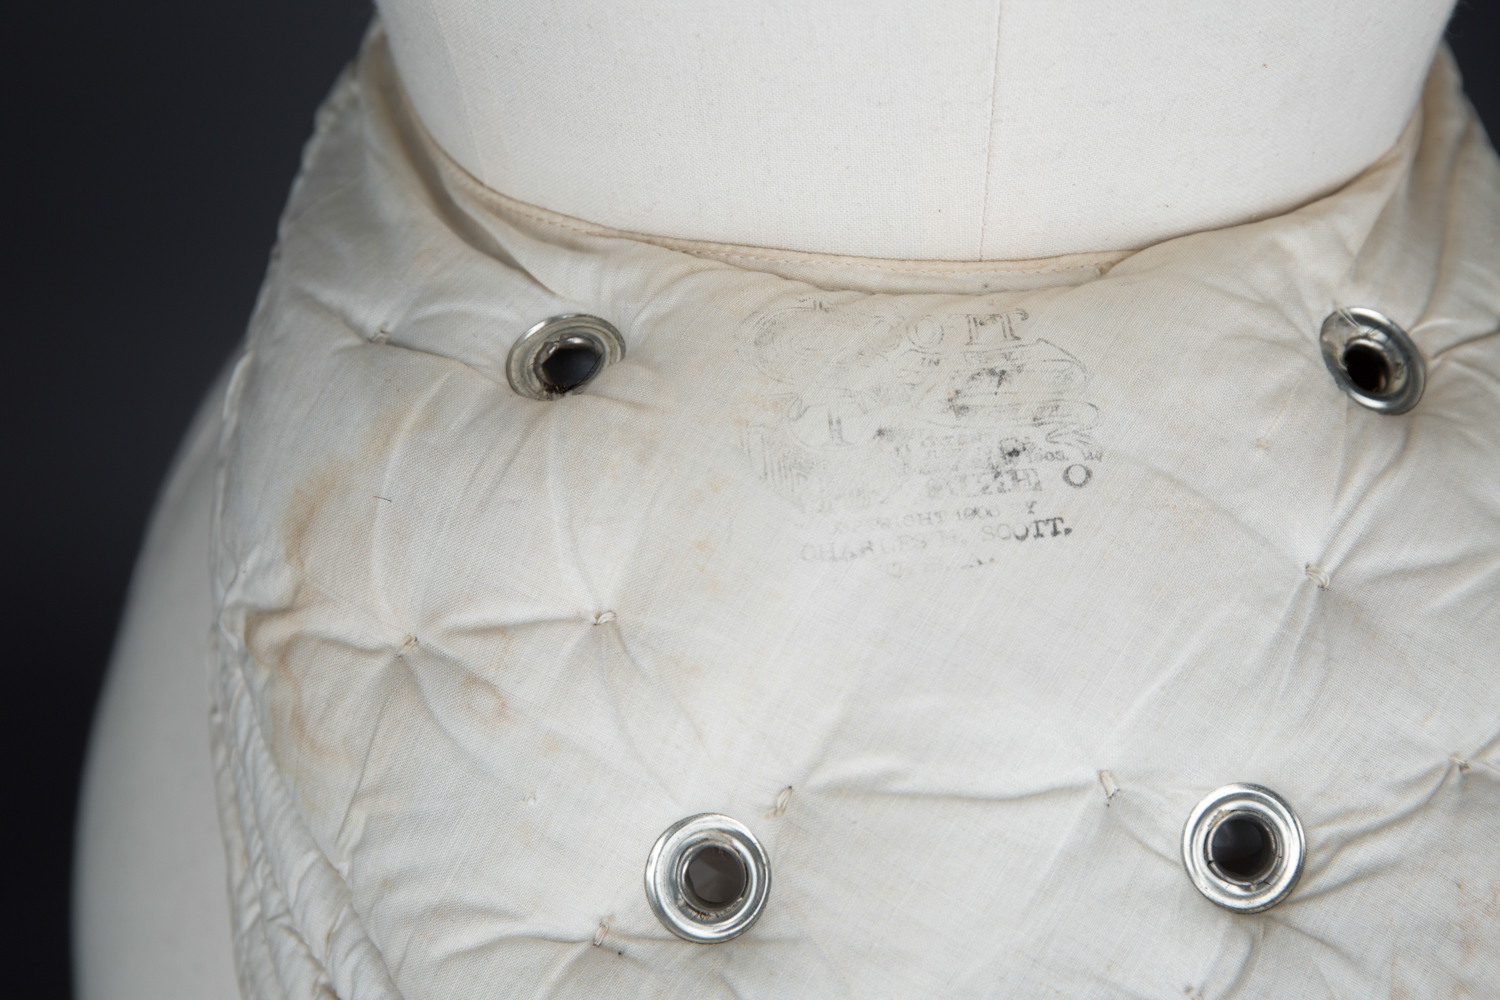 'The Scott' Ventilated Hip Pad & Bustle by Charles H. Scott, c. 1905, USA. The Underpinnings Museum. Photography by Tigz Rice.